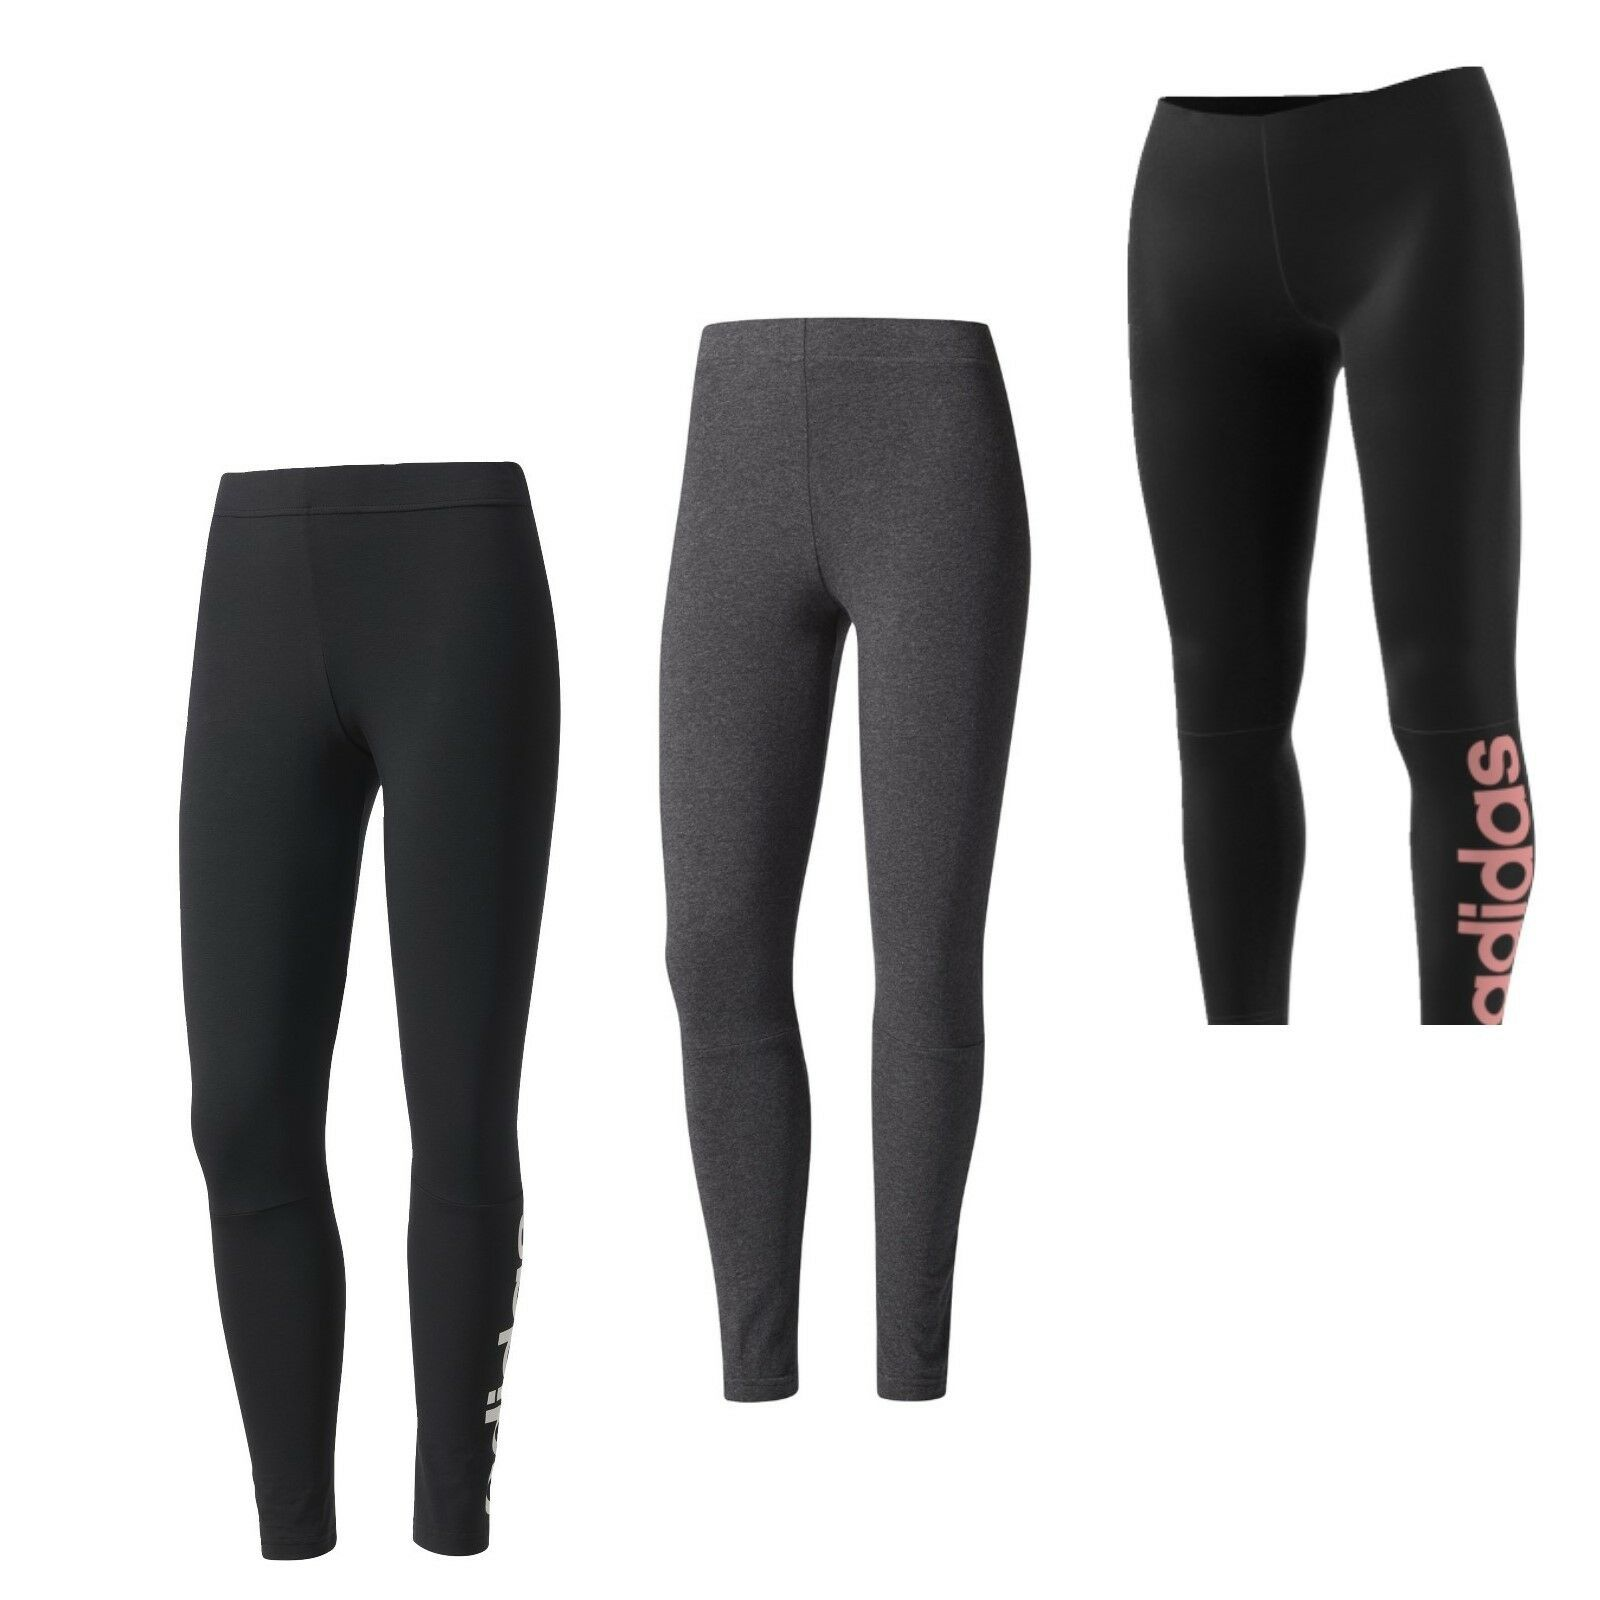 3695be5a71e378 Sport Leggings Damen Adidas Test Vergleich +++ Sport Leggings Damen ...